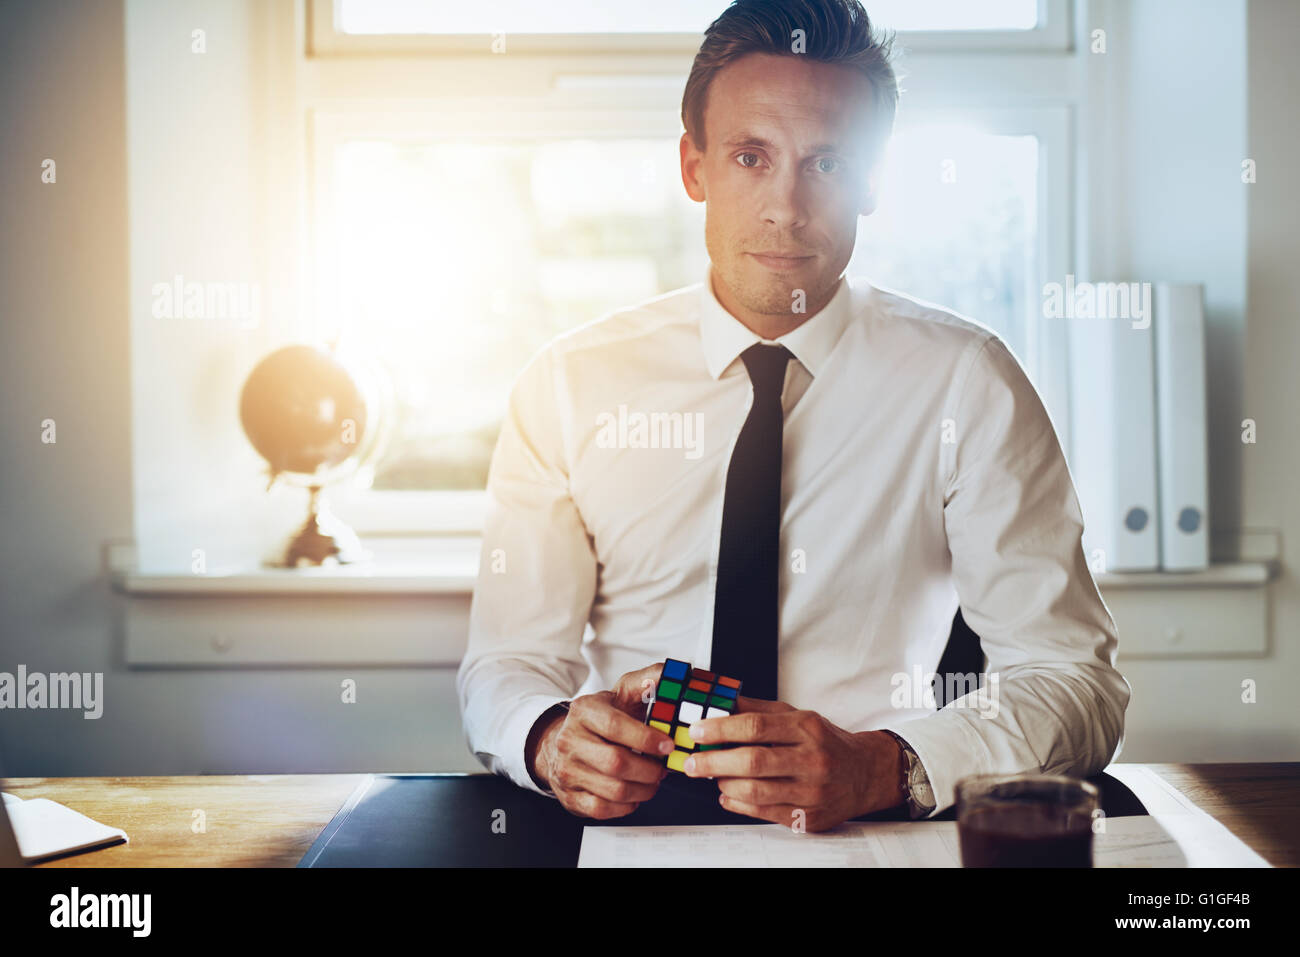 Successful business man solving problems at his desk, consultant and success concept - Stock Image